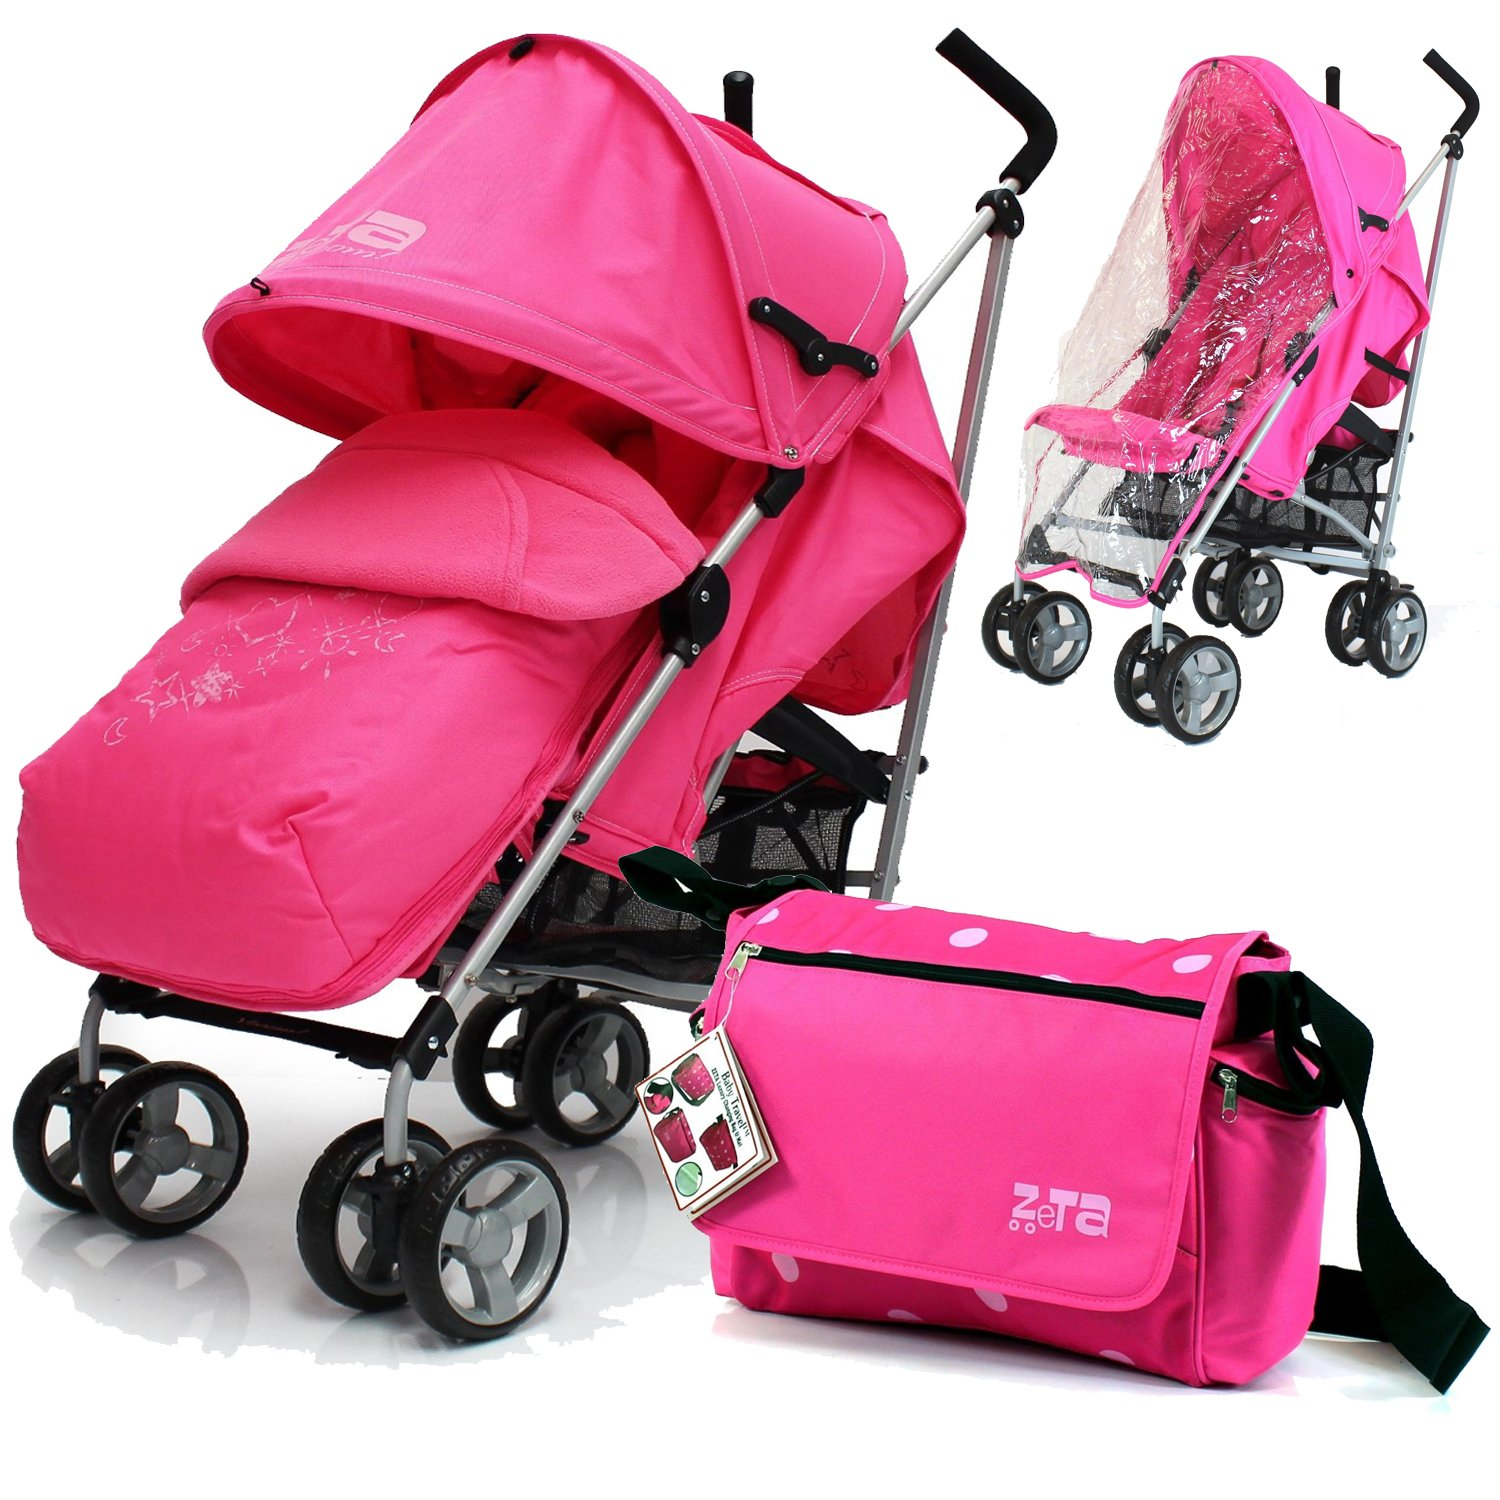 Baby Stroller Zeta Vooom Complete - Raspberry (Pink) With (H&S) Footmuff, Headhugger, Changing Bag And Raincover